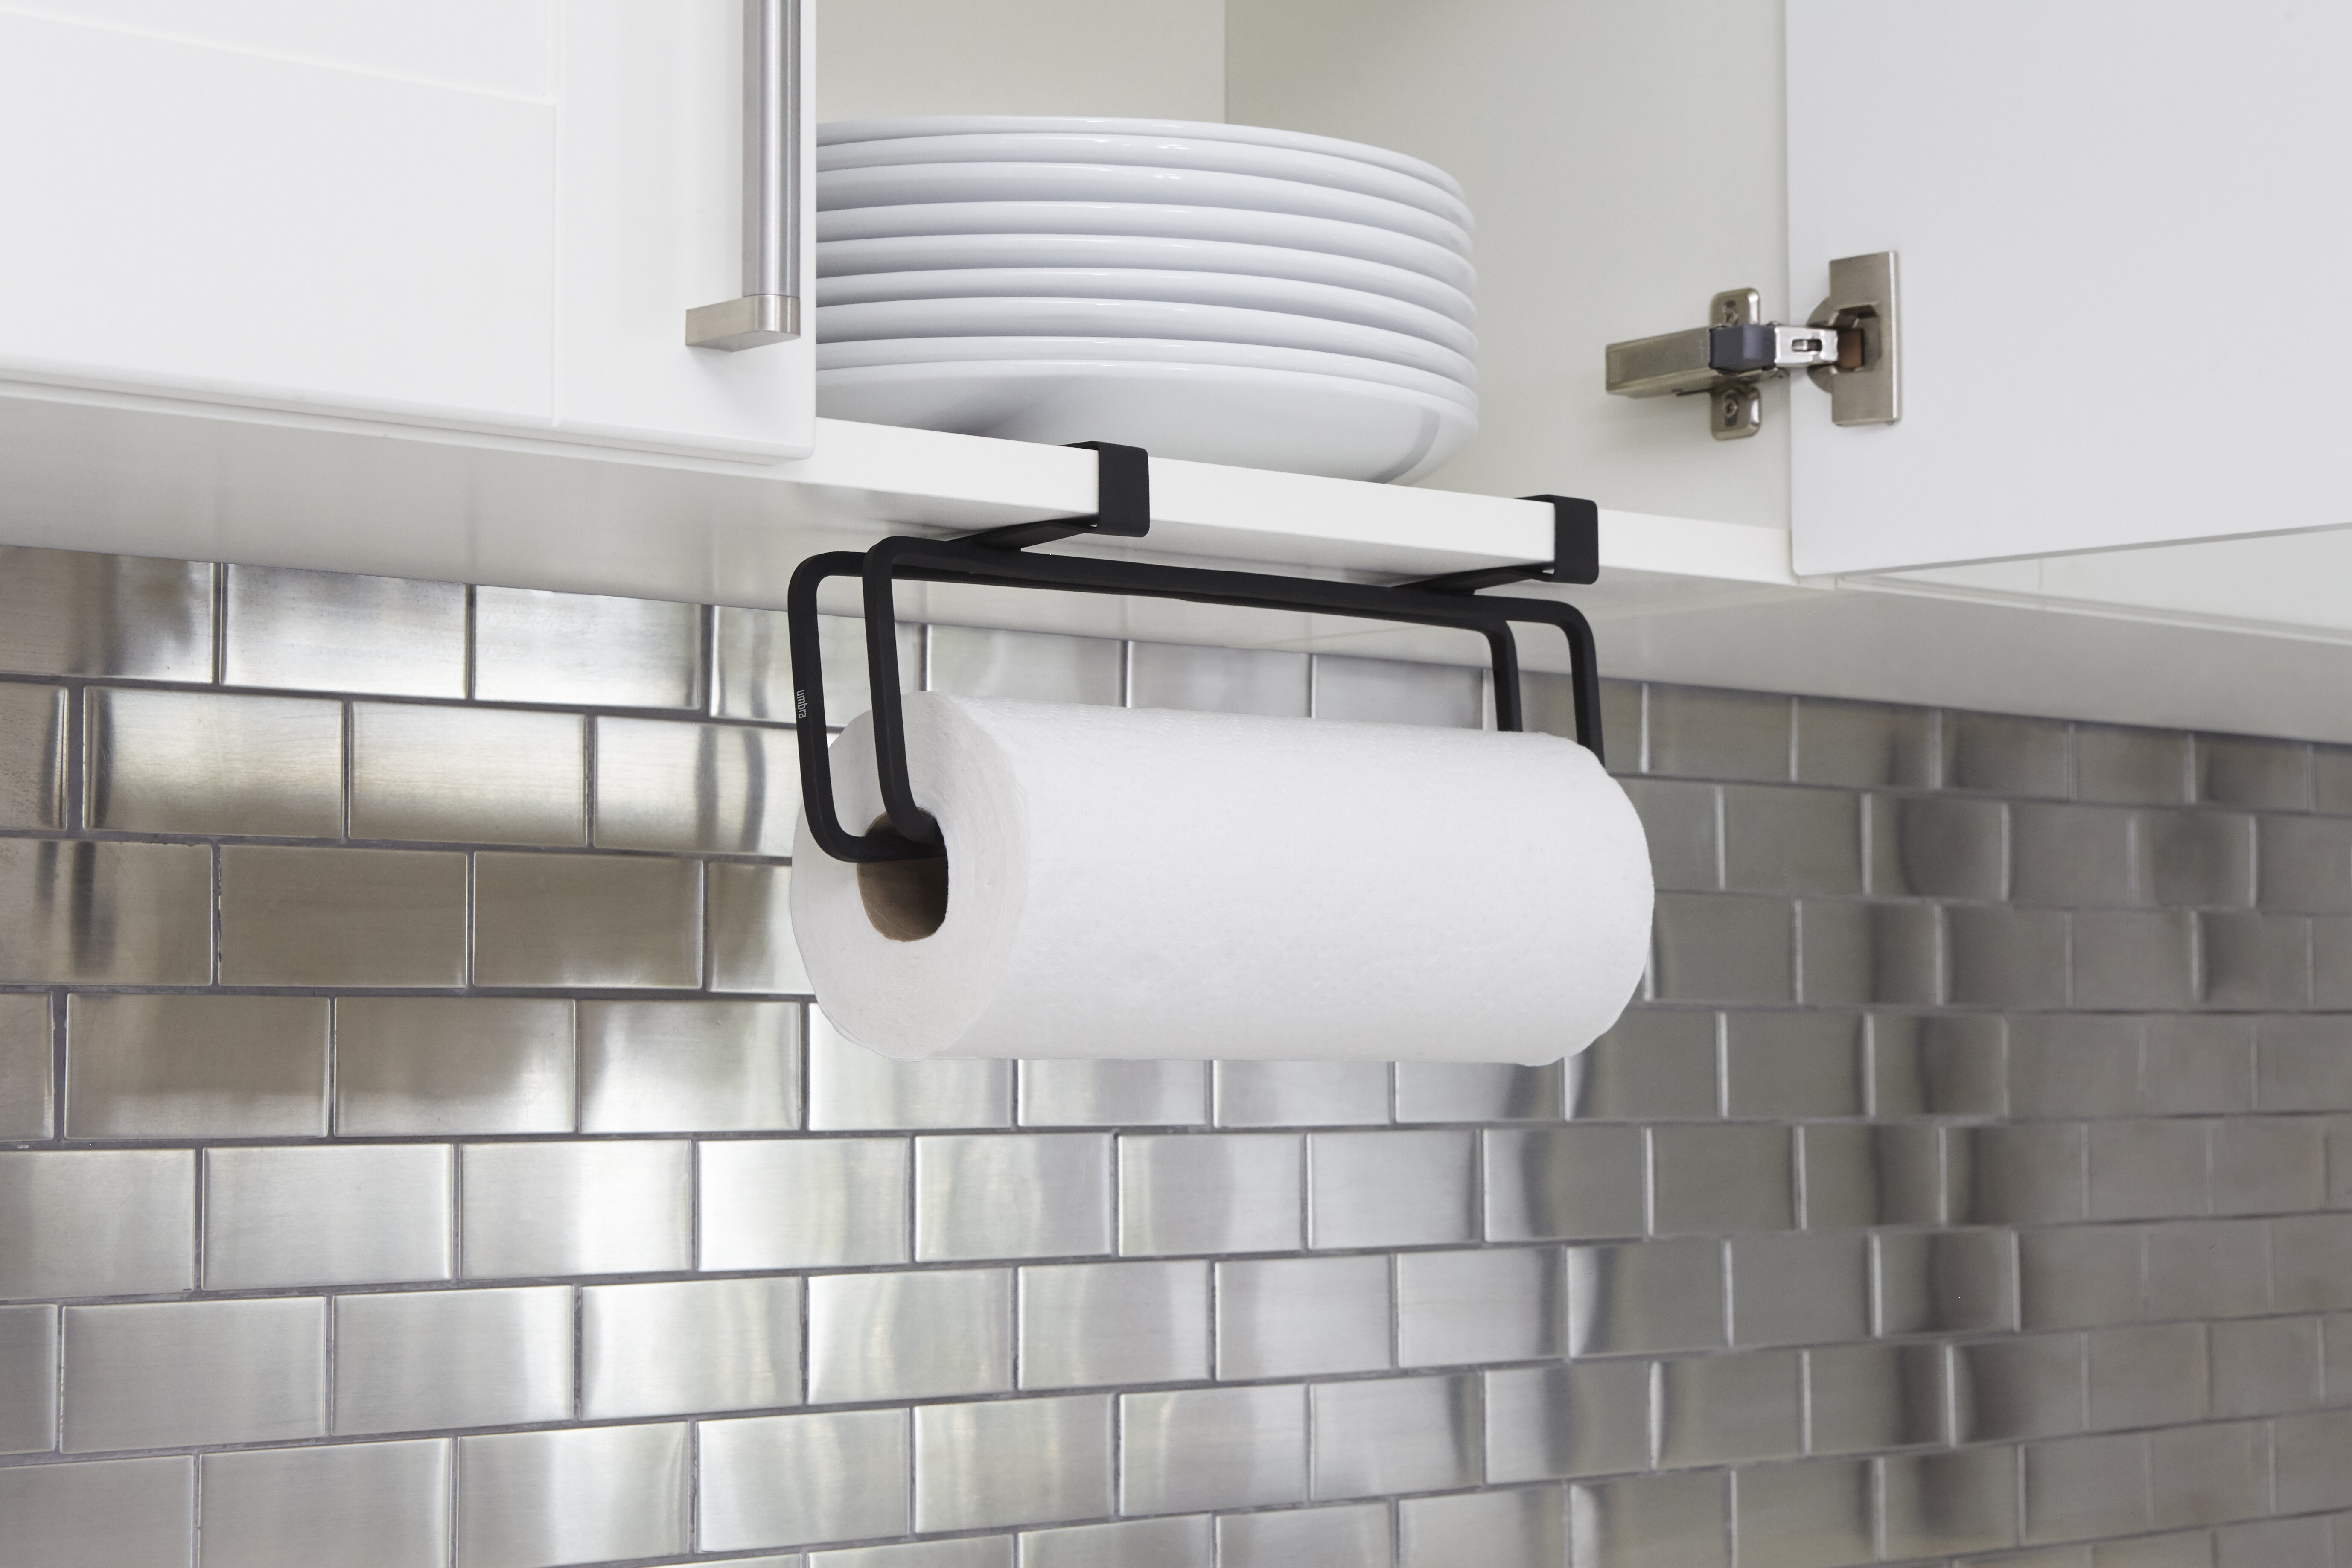 Umbra Squire Wall Mounted Paper Towel Holder Reviews Wayfair